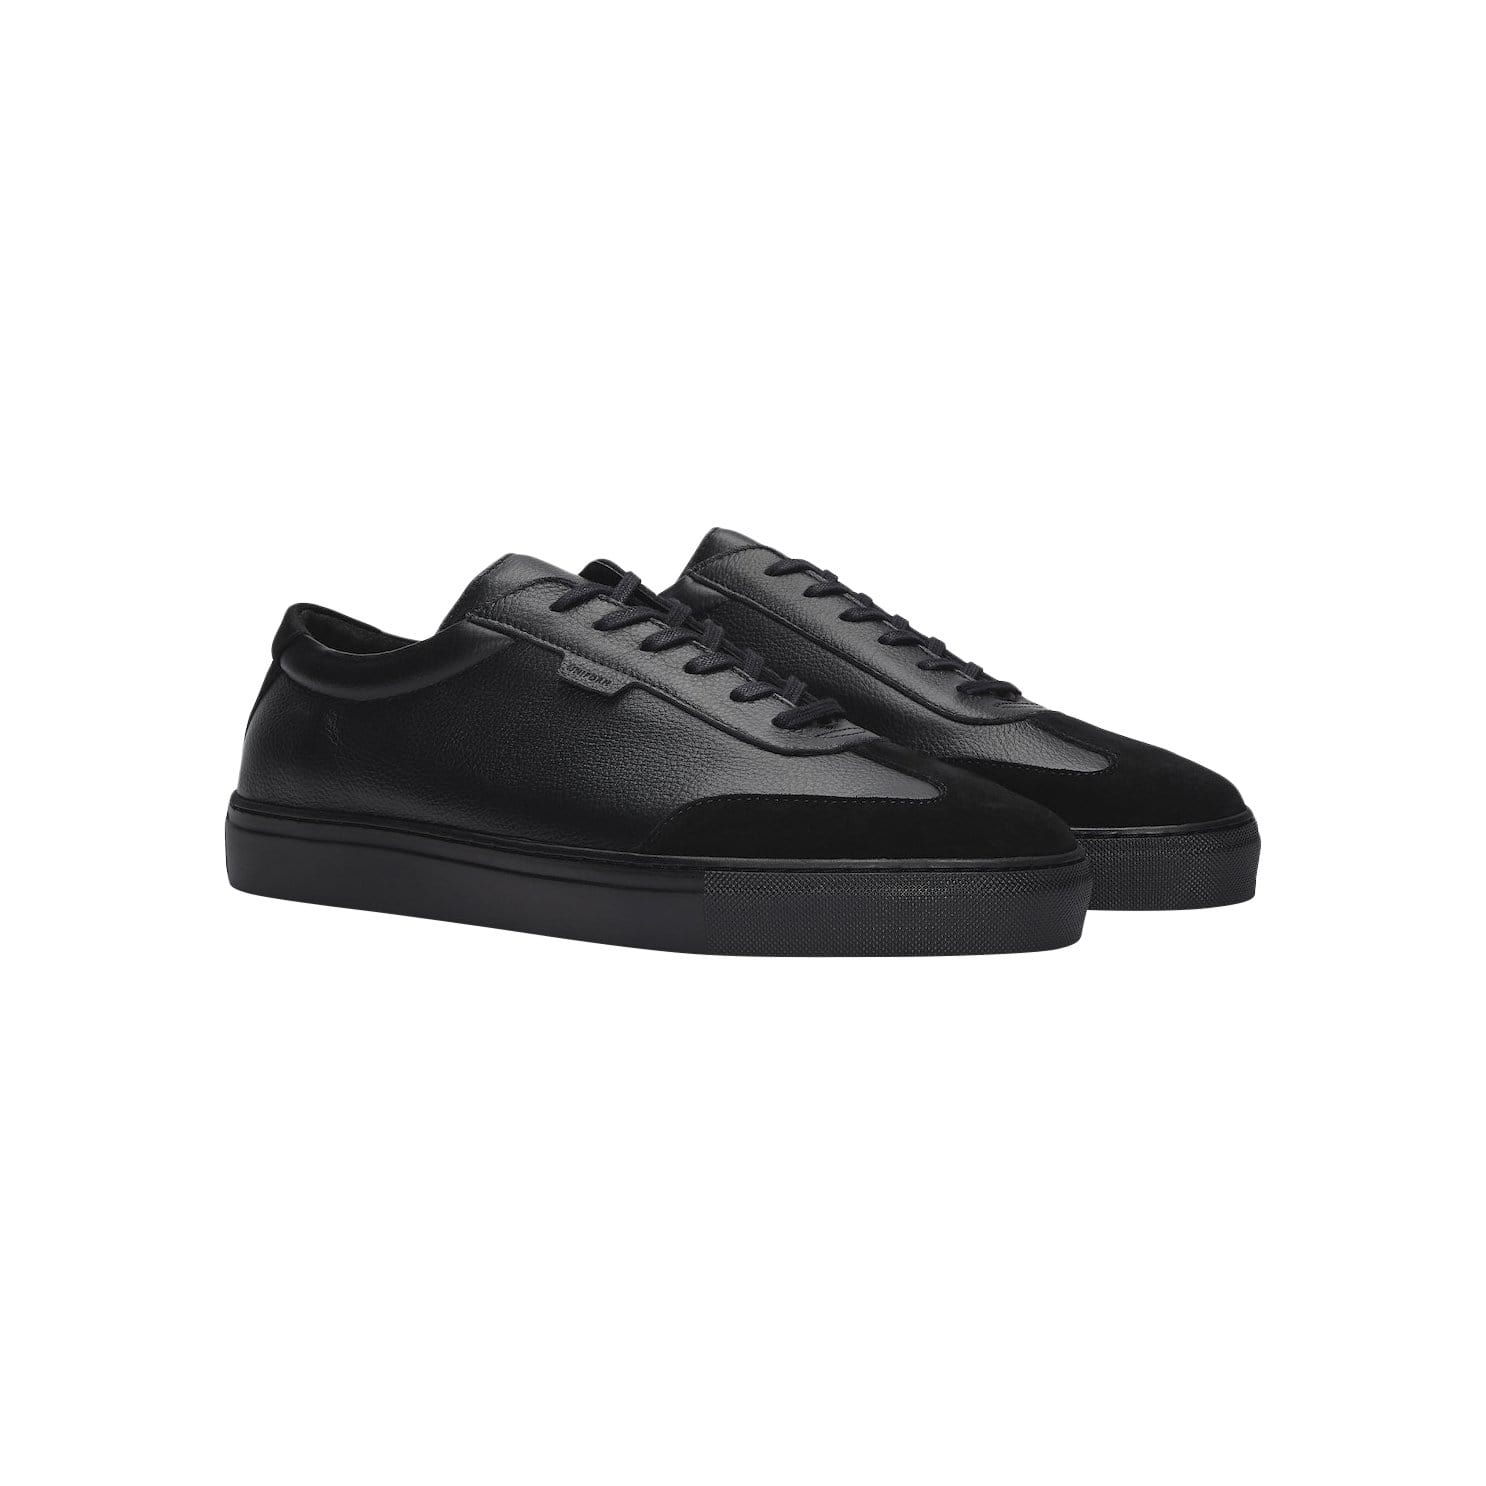 UNIFORM STANDARD SERIES 3 Series 3 Triple Black Tumbled + Suede Sneaker